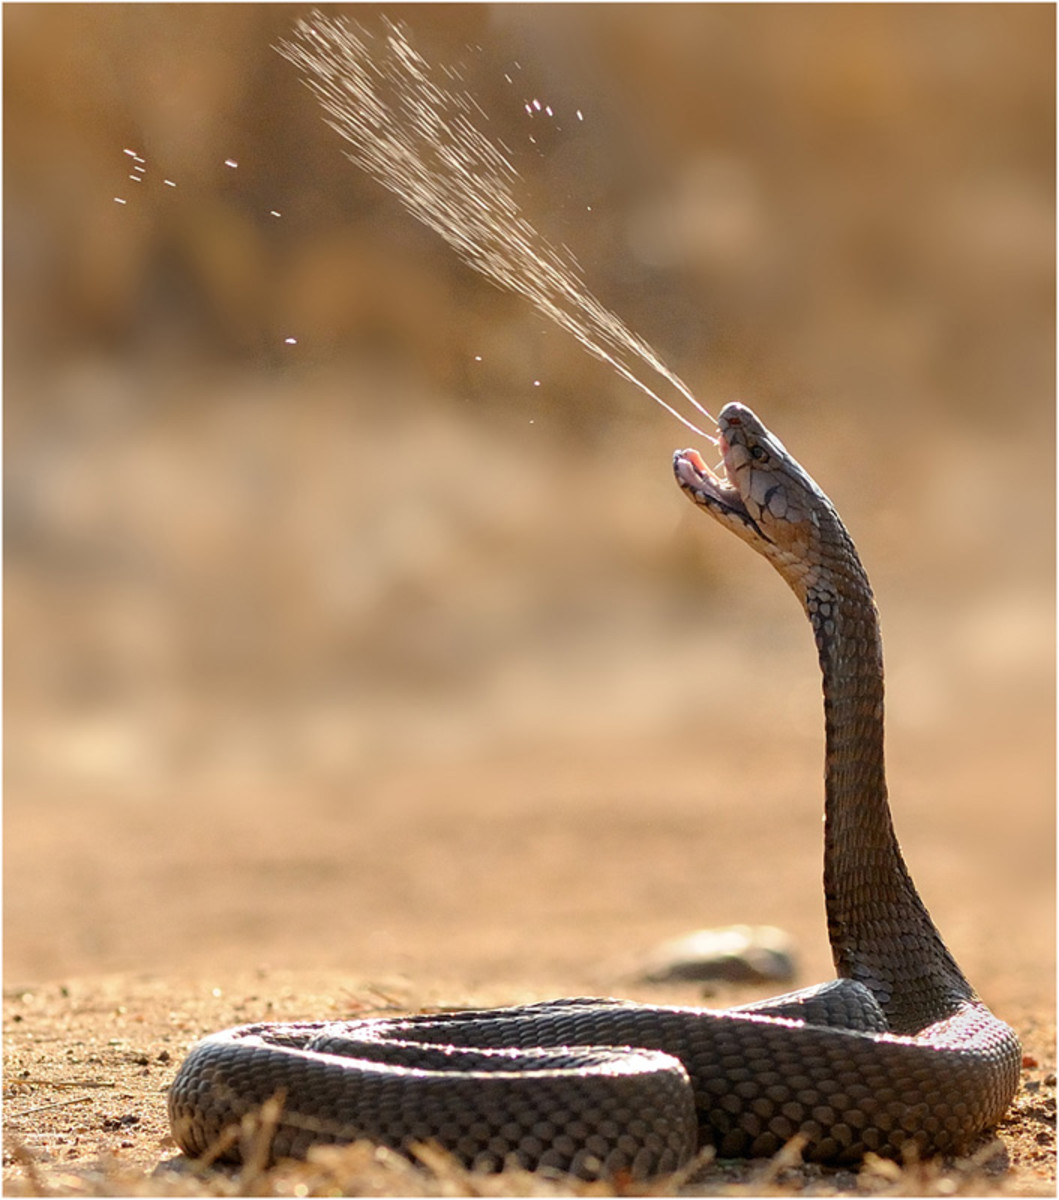 The hollow fangs allow some snakes, like spitting cobras, to spray their venom several feet.